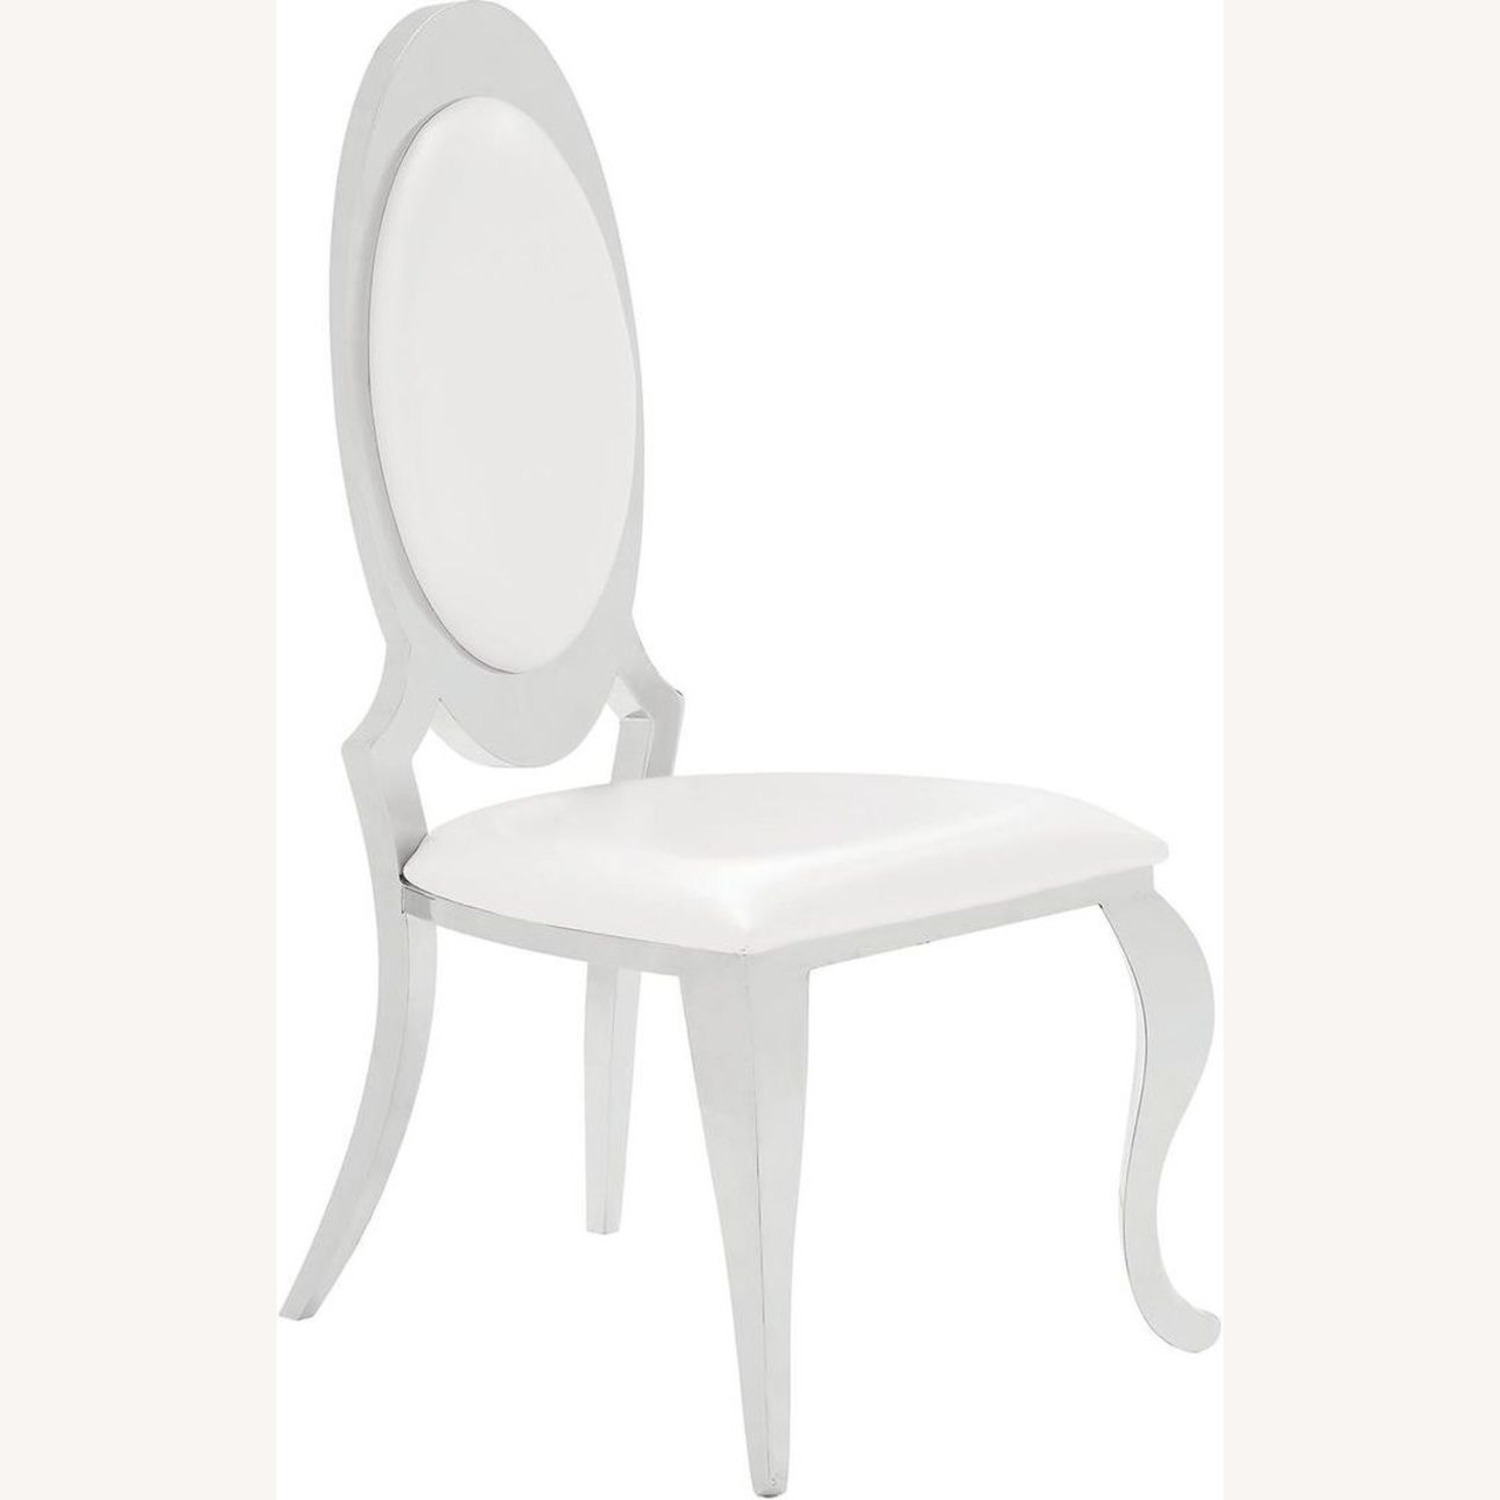 Modern Side Chair In Creamy White Upholstery - image-0